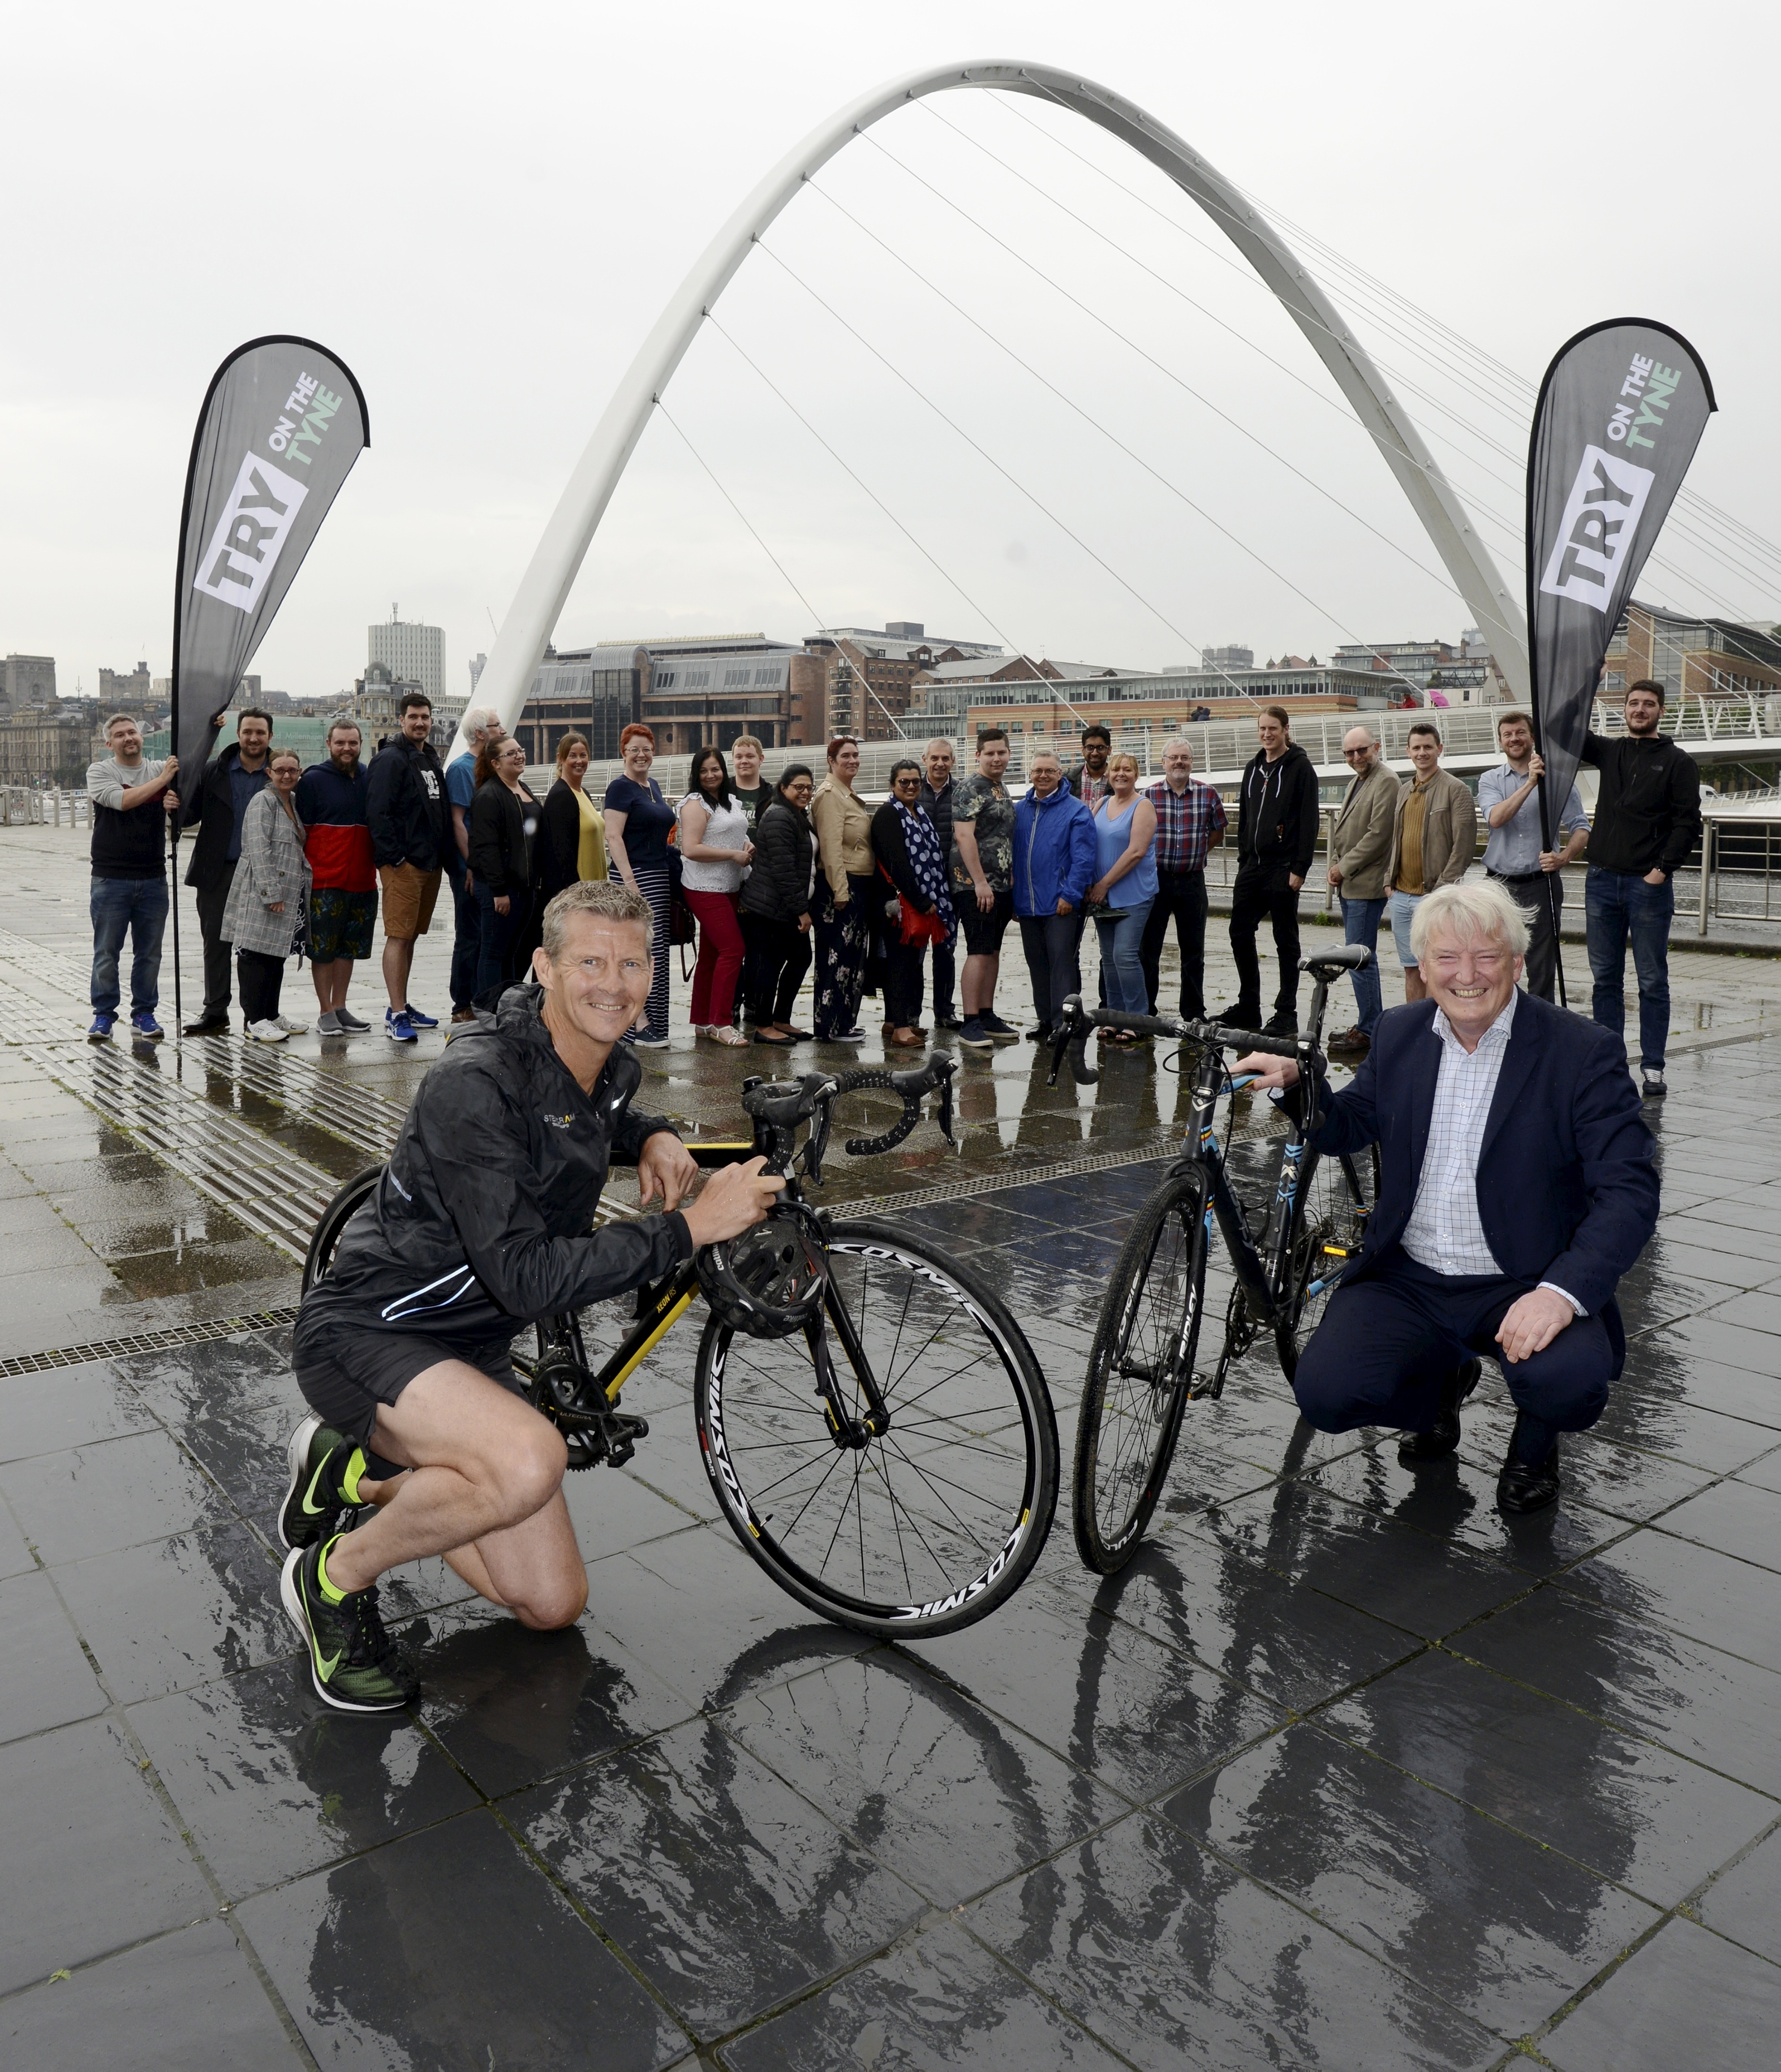 Try on the Tyne event organiser Steve Cram pictured with Carsten Staehr, CEO of Cintra and Cintra staff who have signed up to take part in the region's newest multi-sport event, TRY on the Tyne. Cintra will be headline sponsor of the inaugural event on Saturday 10 August. Organised by Steve Cram's company Events of the North, in partnership with Newcastle City Council and Gateshead Council, TRY on the Tyne will include duathlon (run-bike-run) races, along with 5K and 10K runs and junior races, with all events enjoying a mass start at Baltic Square in Gateshead and finishing on the Newcastle Quayside.